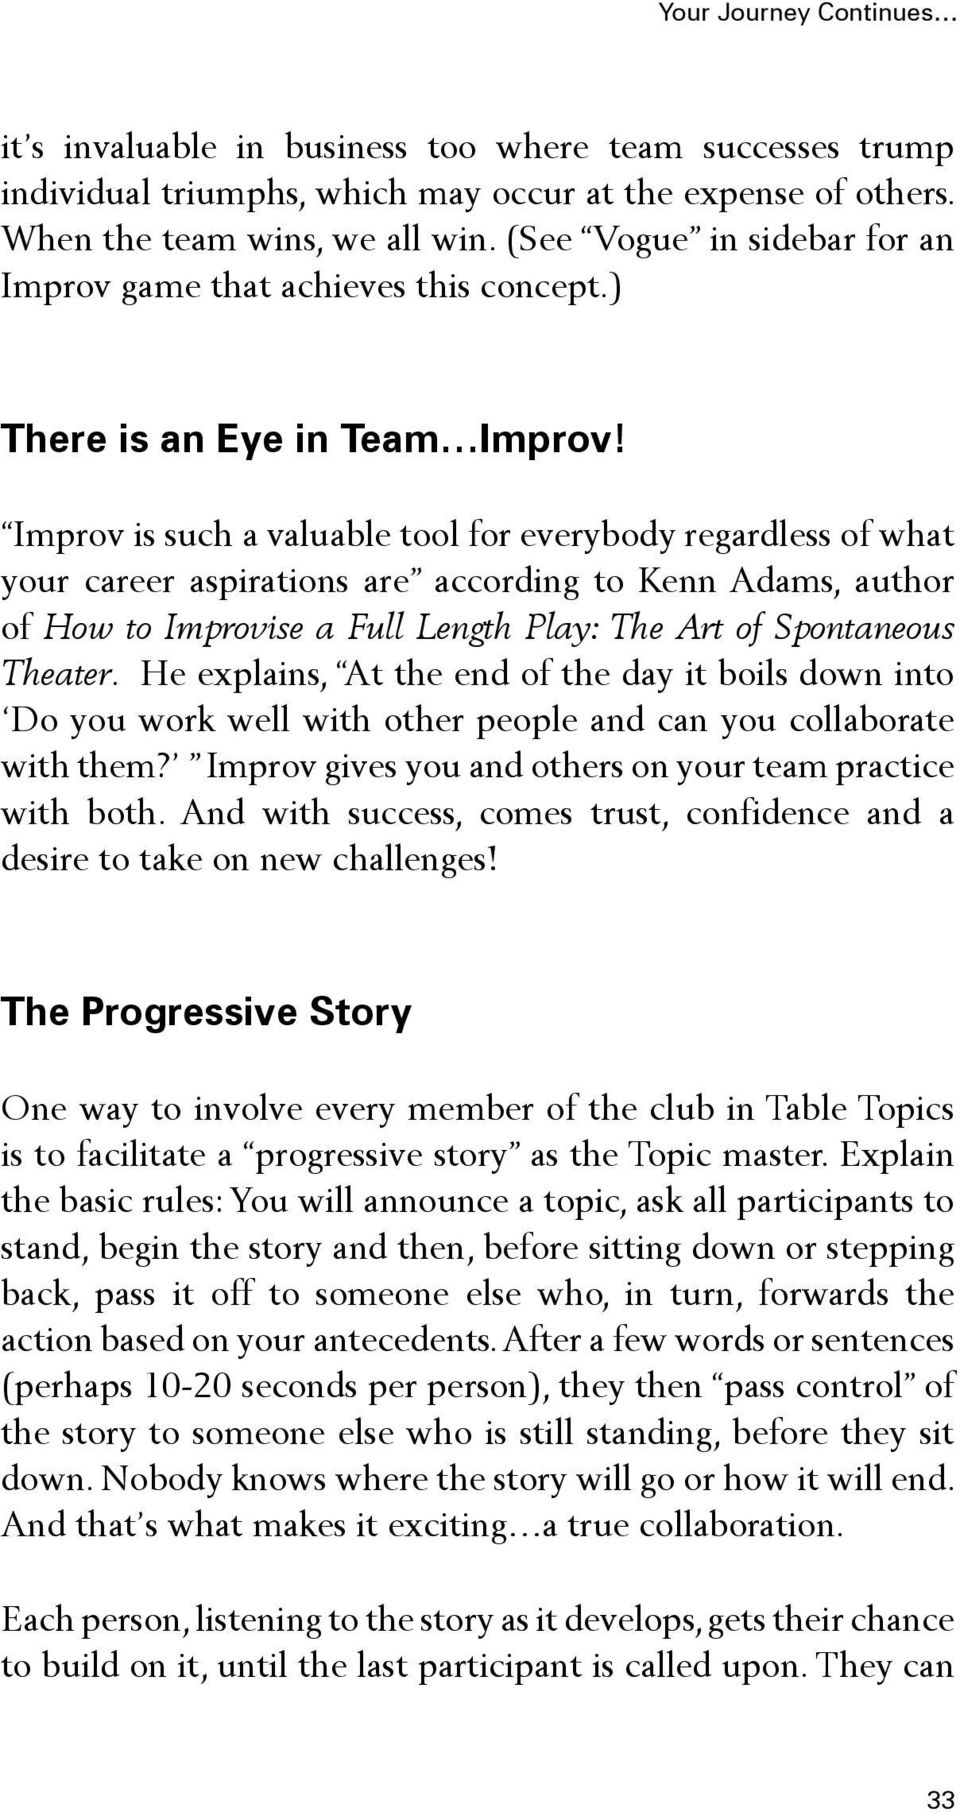 Improv is such a valuable tool for everybody regardless of what your career aspirations are according to Kenn Adams, author of How to Improvise a Full Length Play: The Art of Spontaneous Theater.